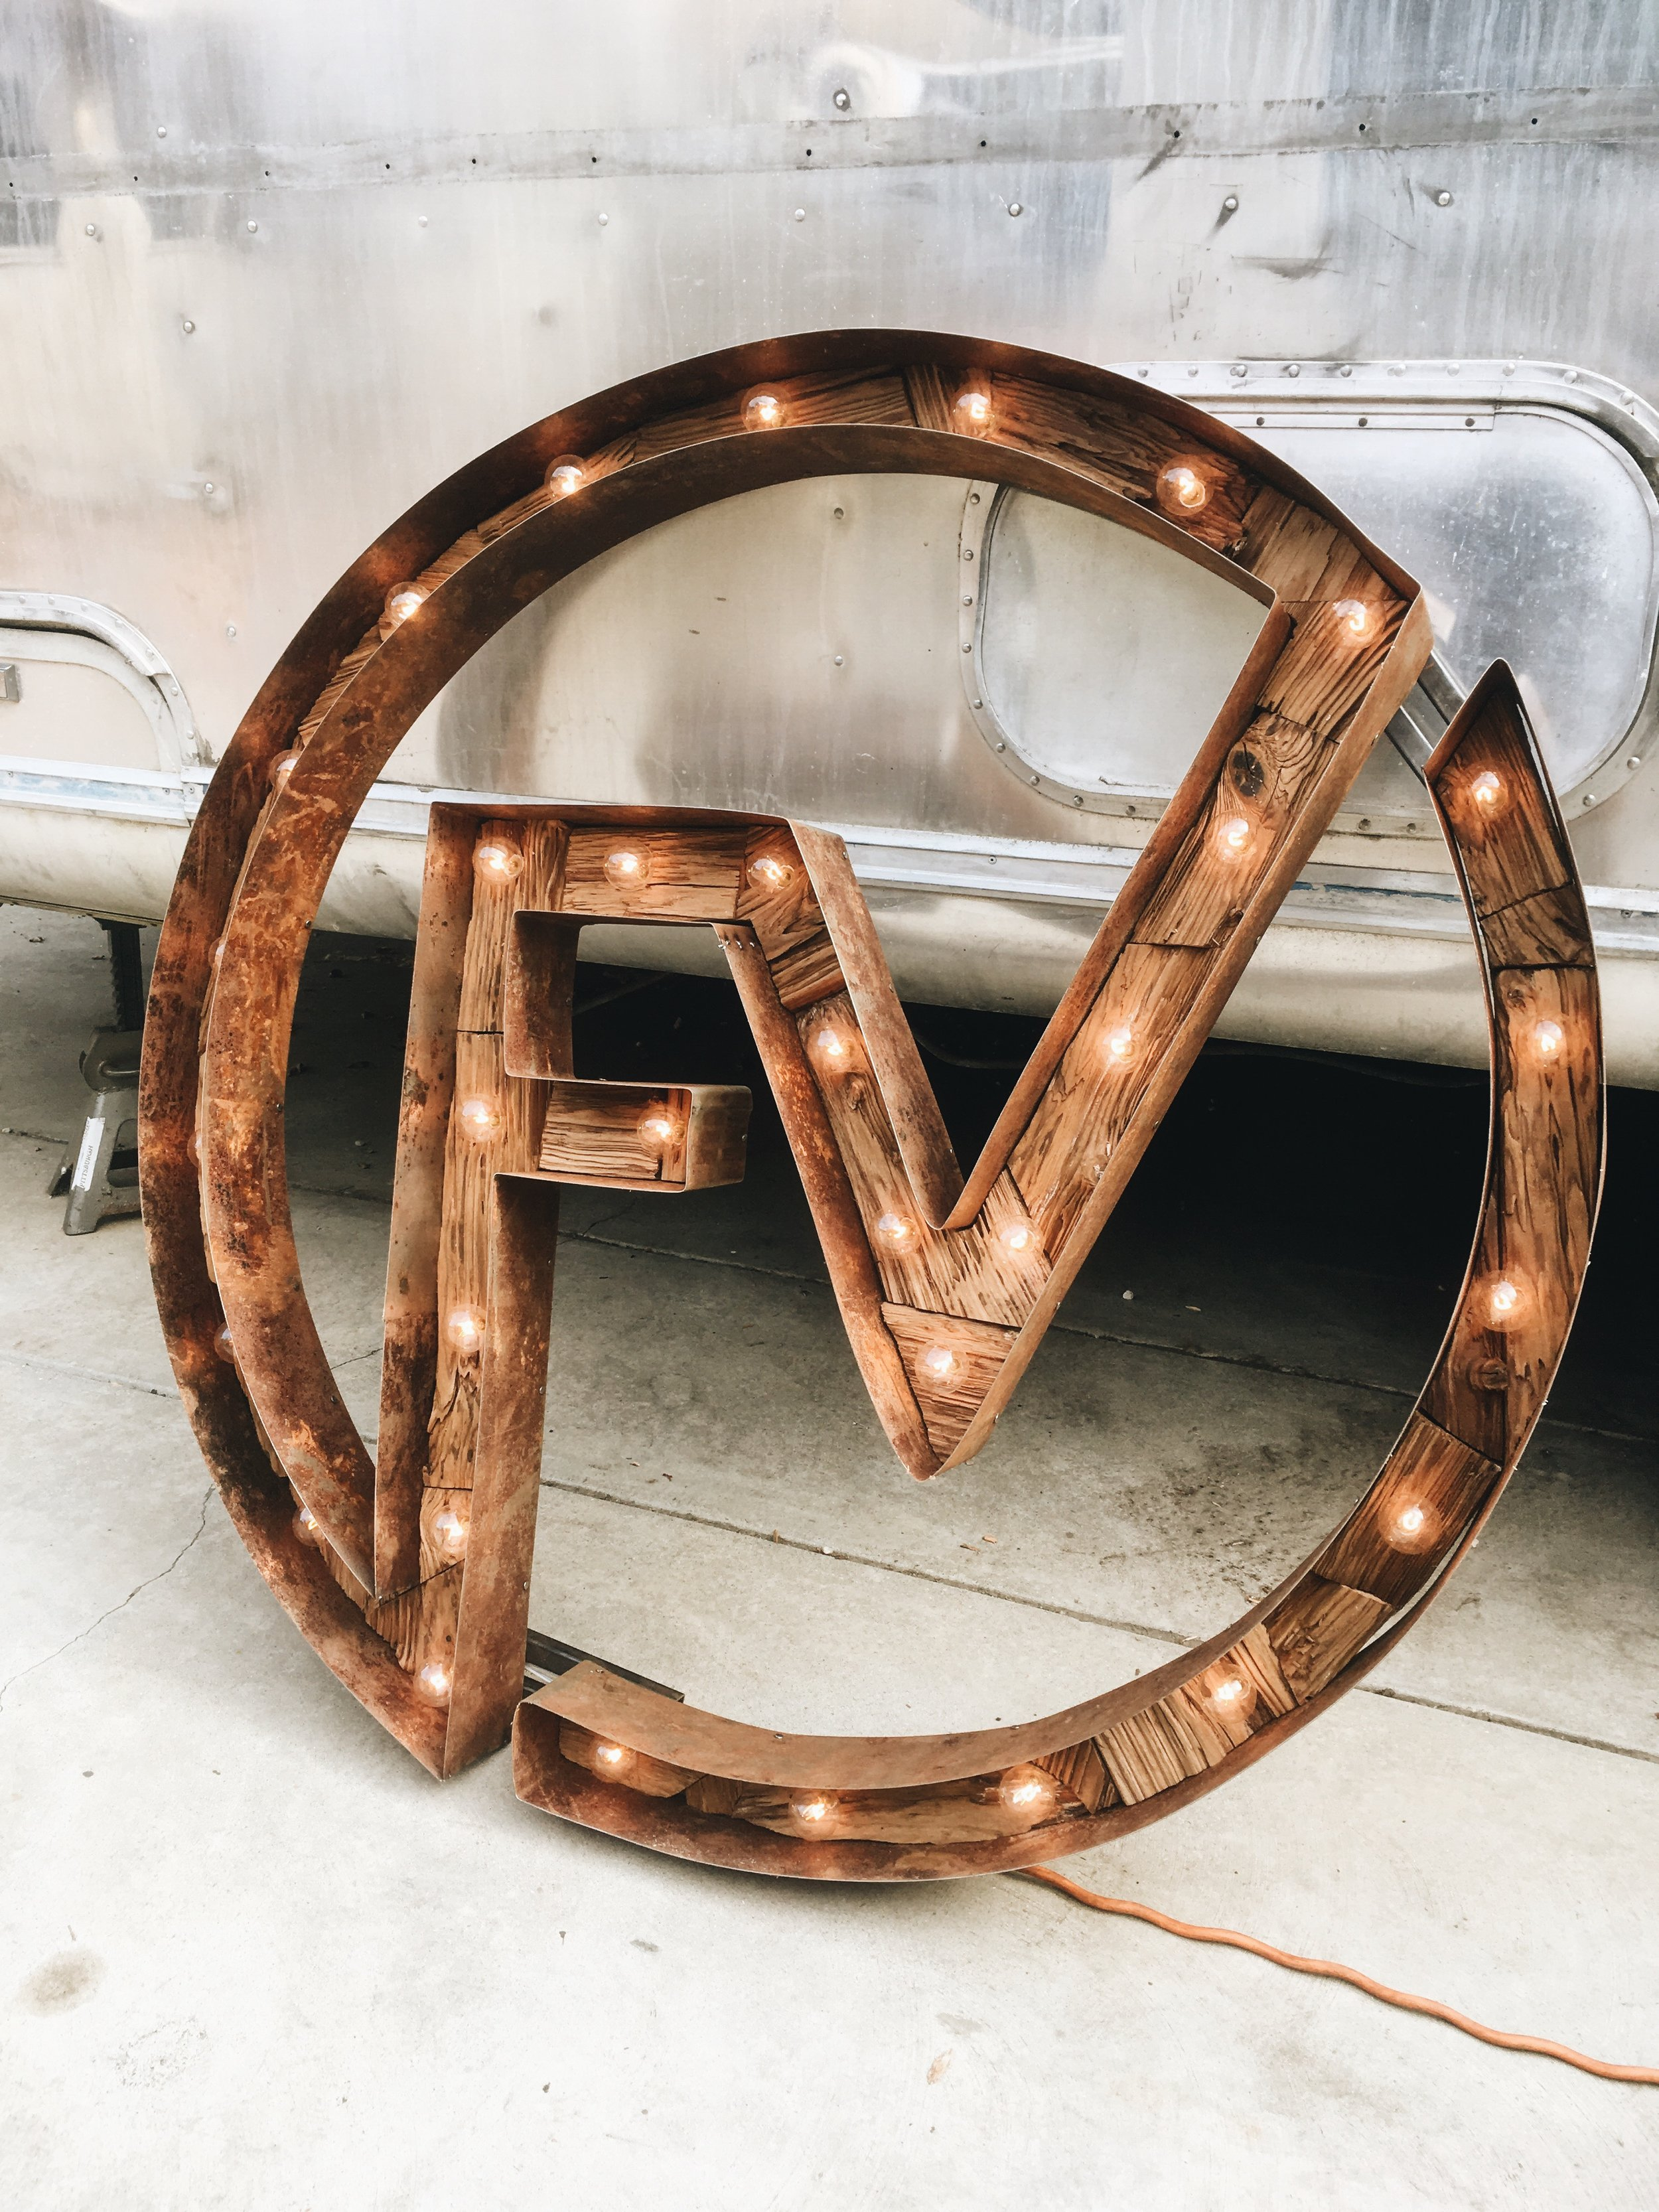 Vintage marquee sign made by AN